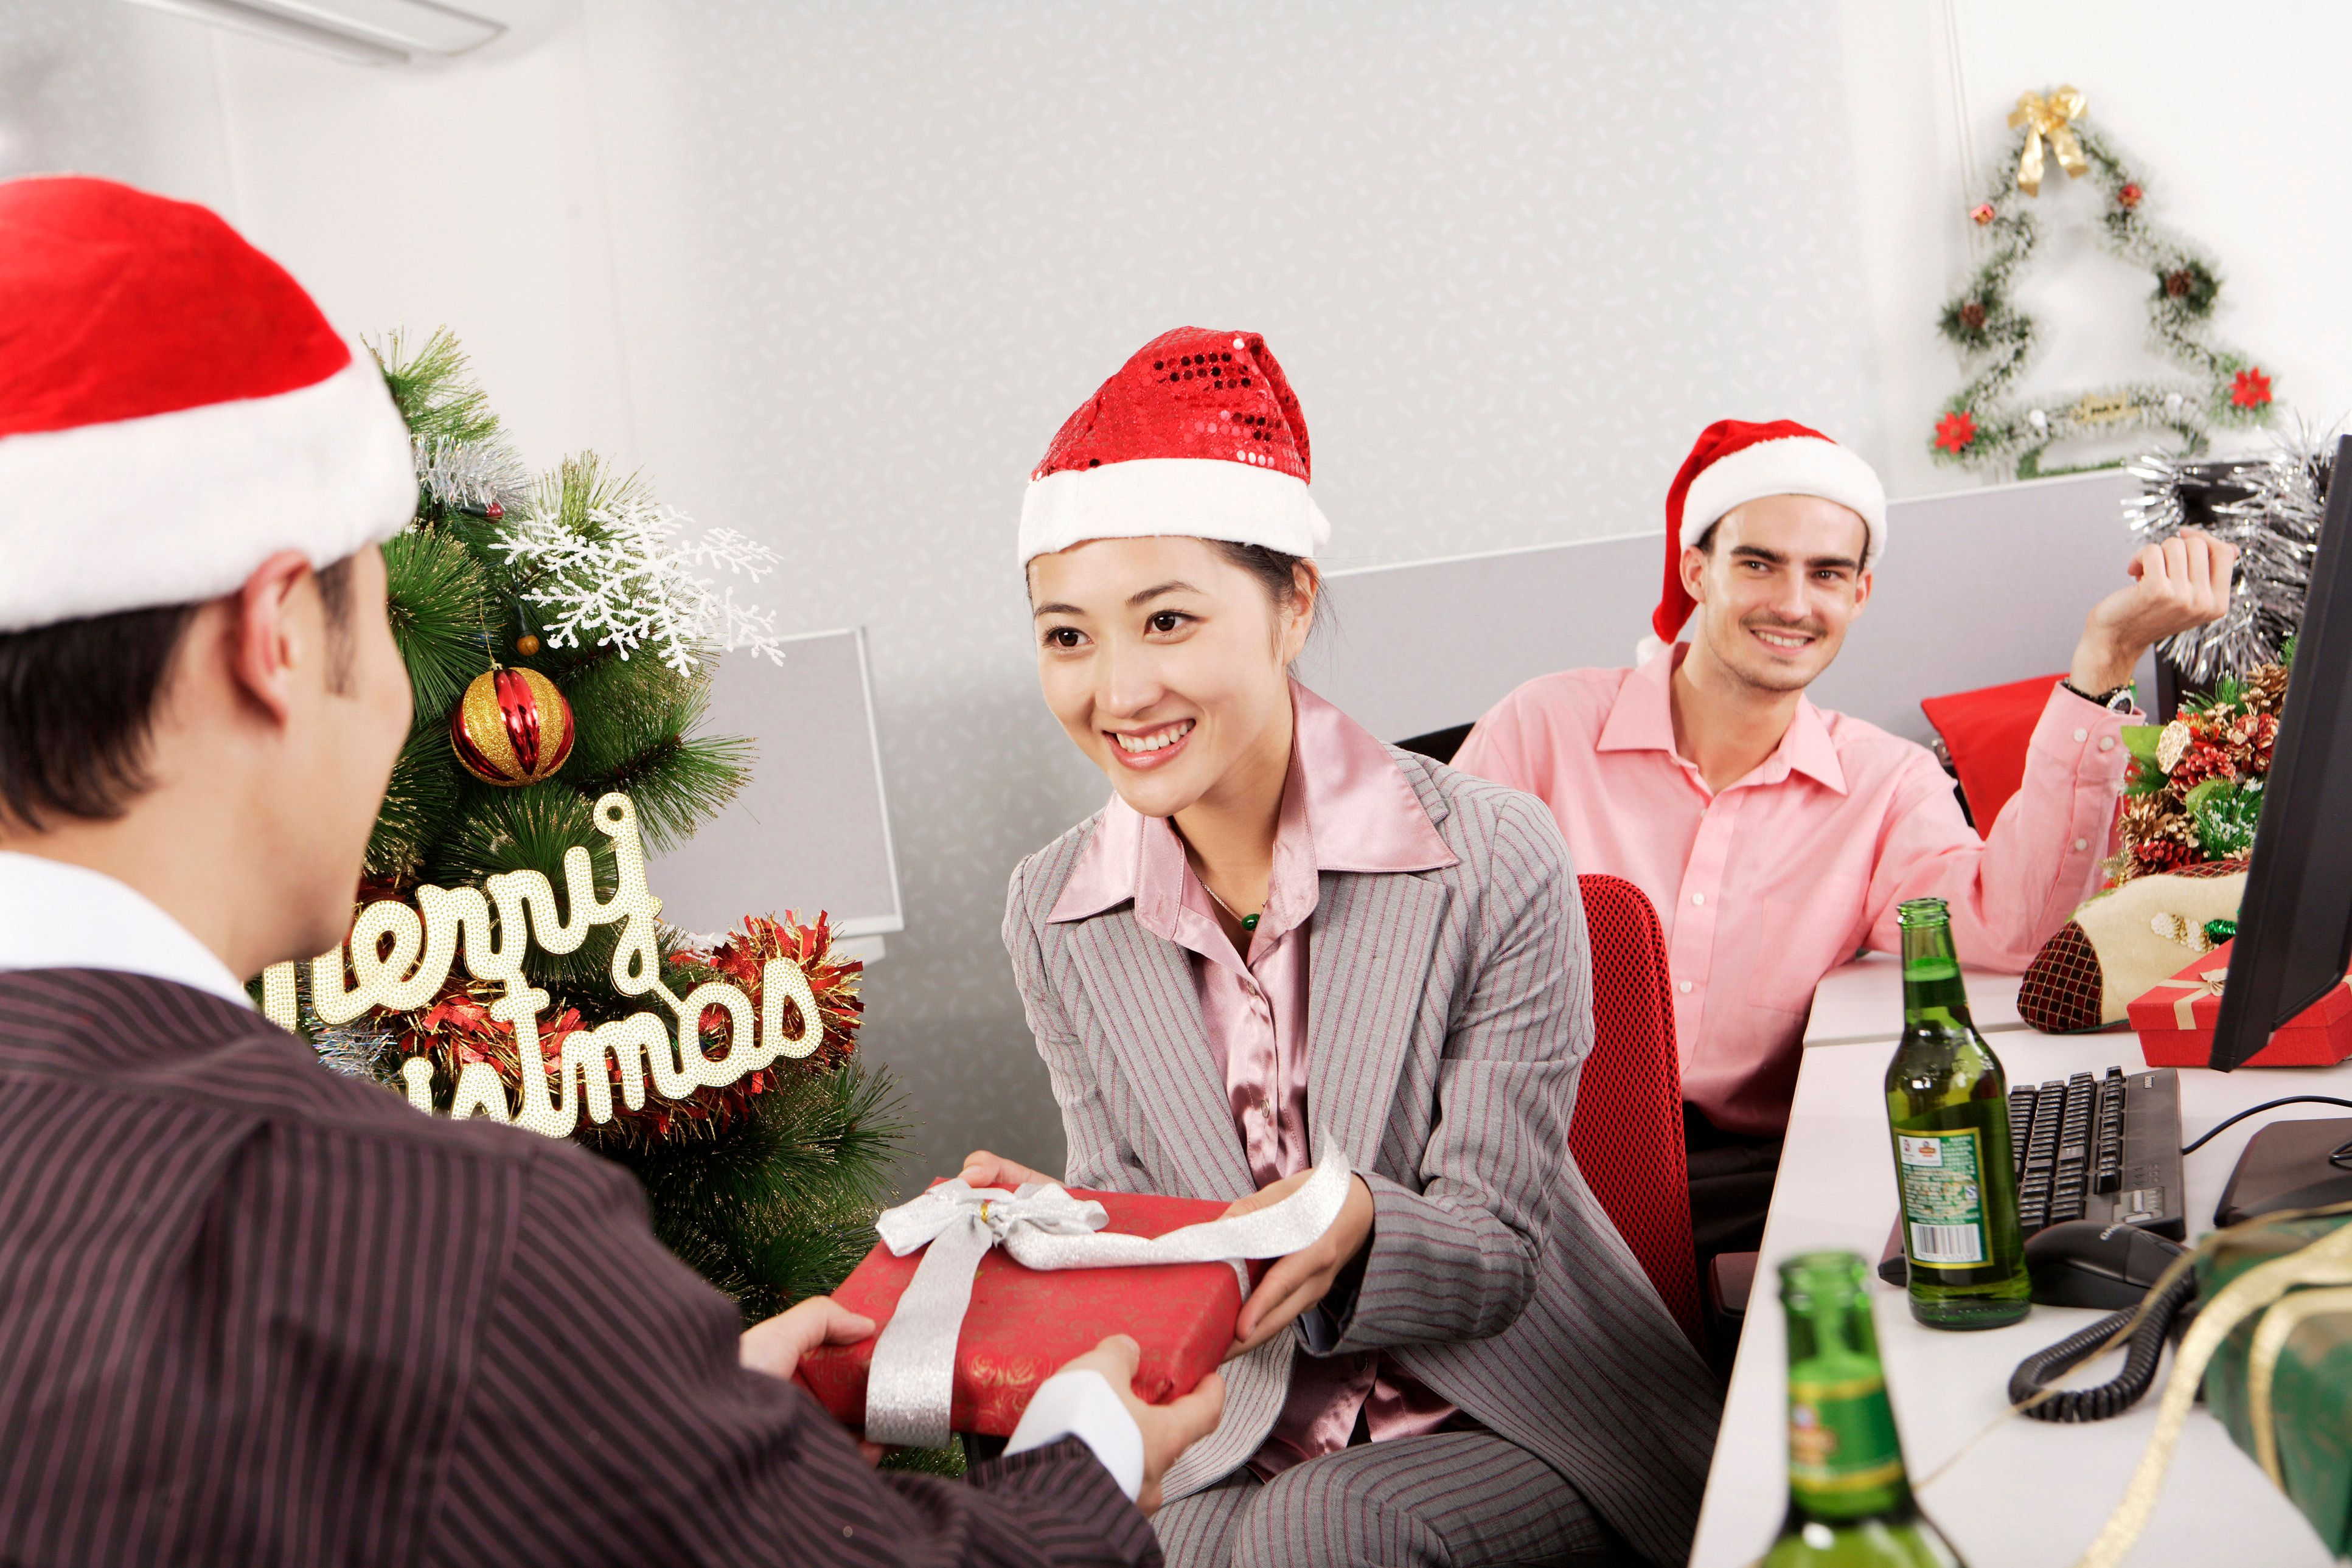 Office woman giving gift to man on Christmas Day